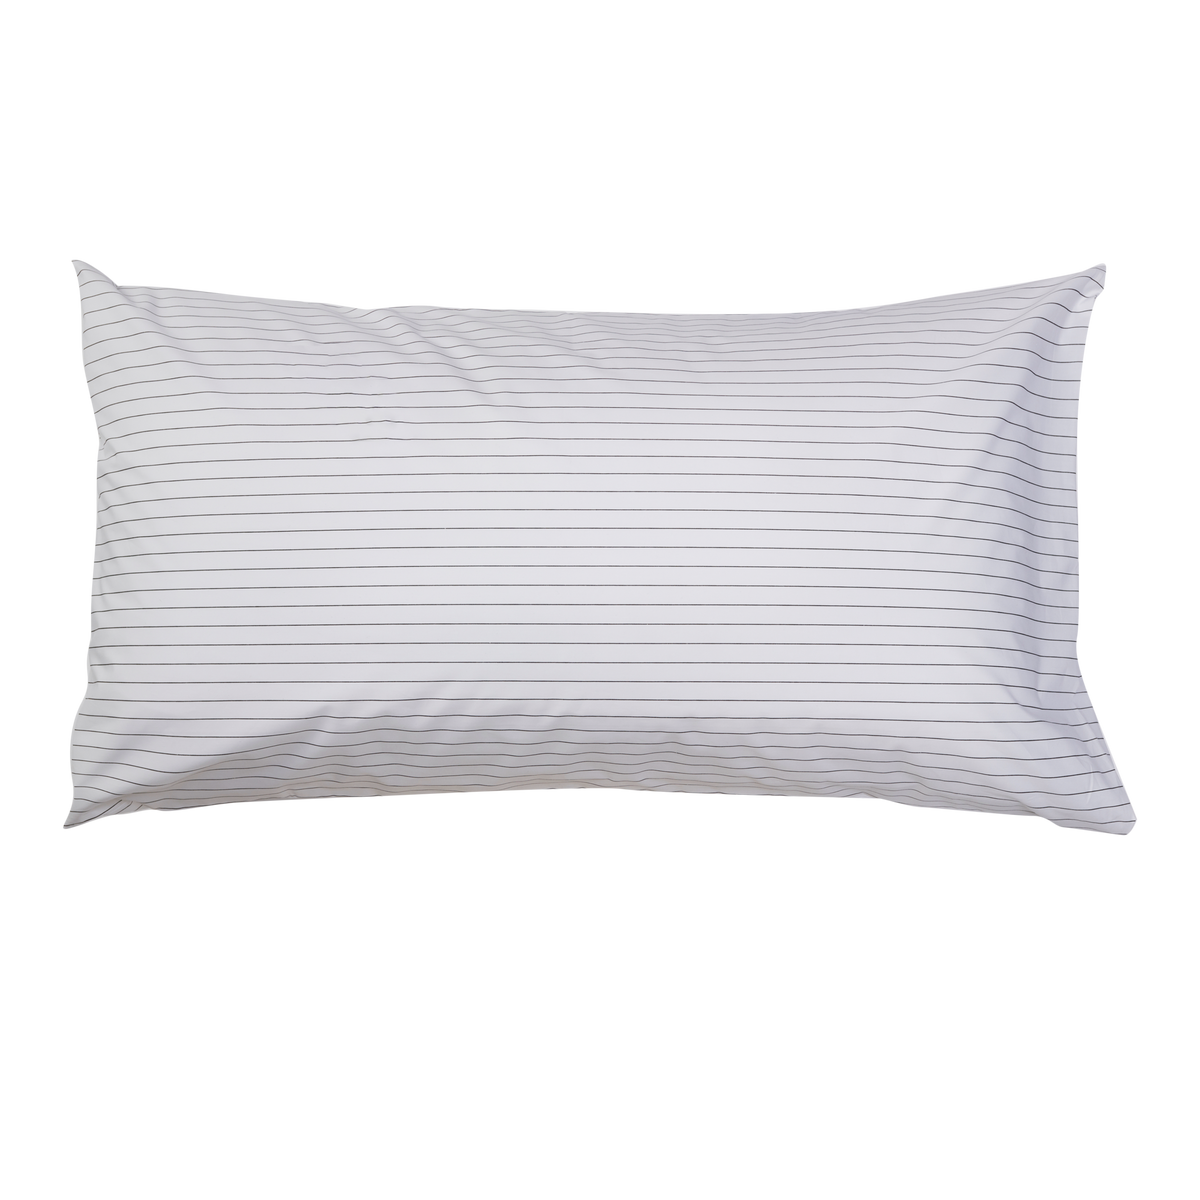 Essential Collection Percale Pillowcases in Charcoal Stripe | Skylark+Owl Linen Co.